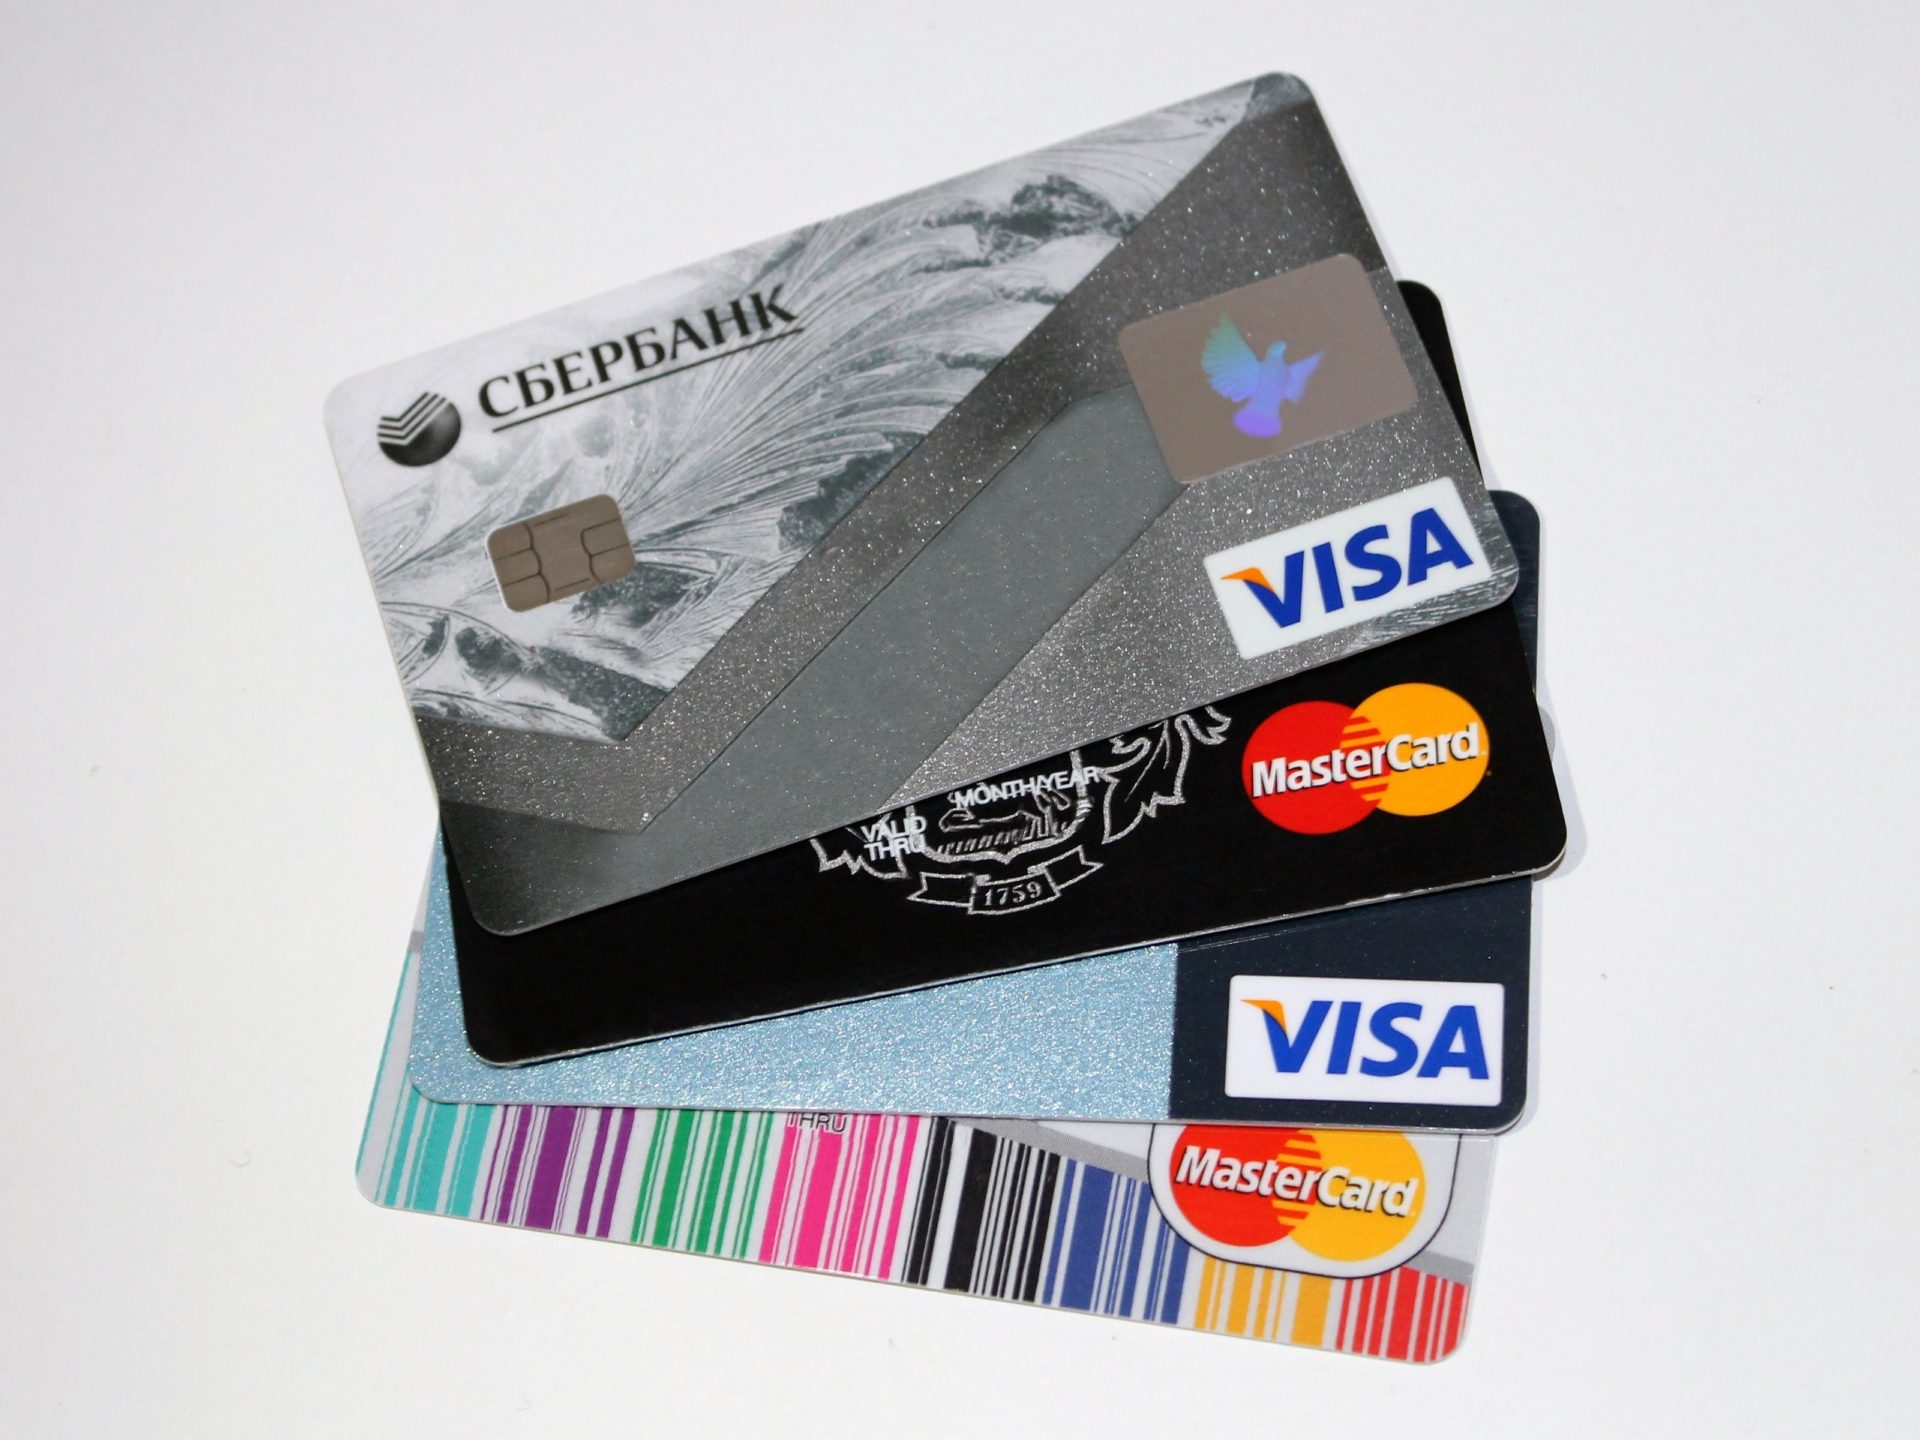 An image of Visa and Master Card credit cards